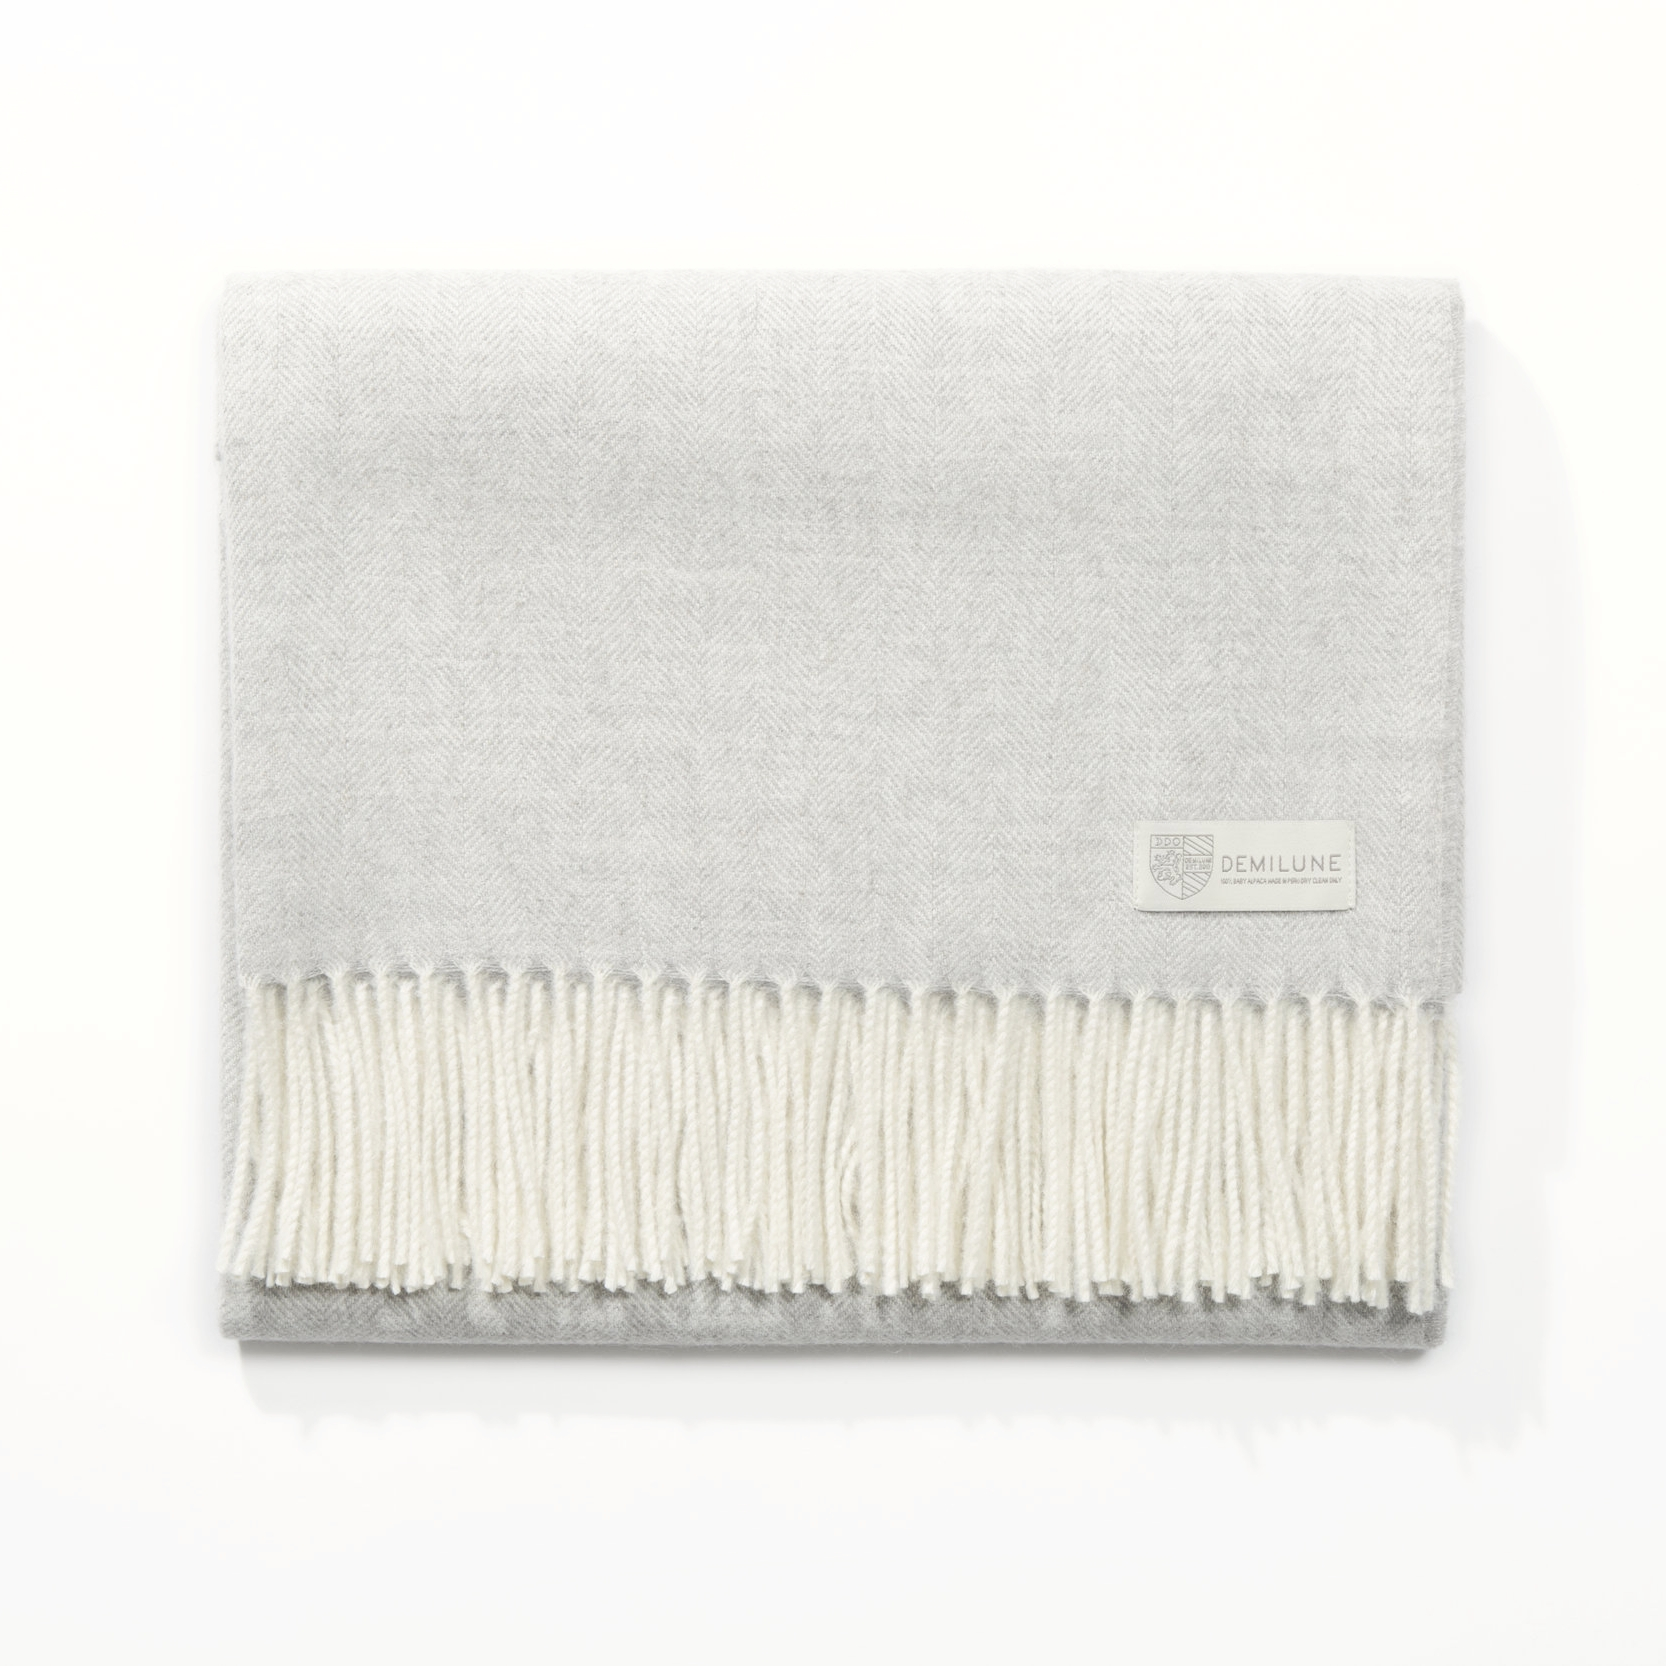 Grey -size: 51 in x 71 in (with fringes)